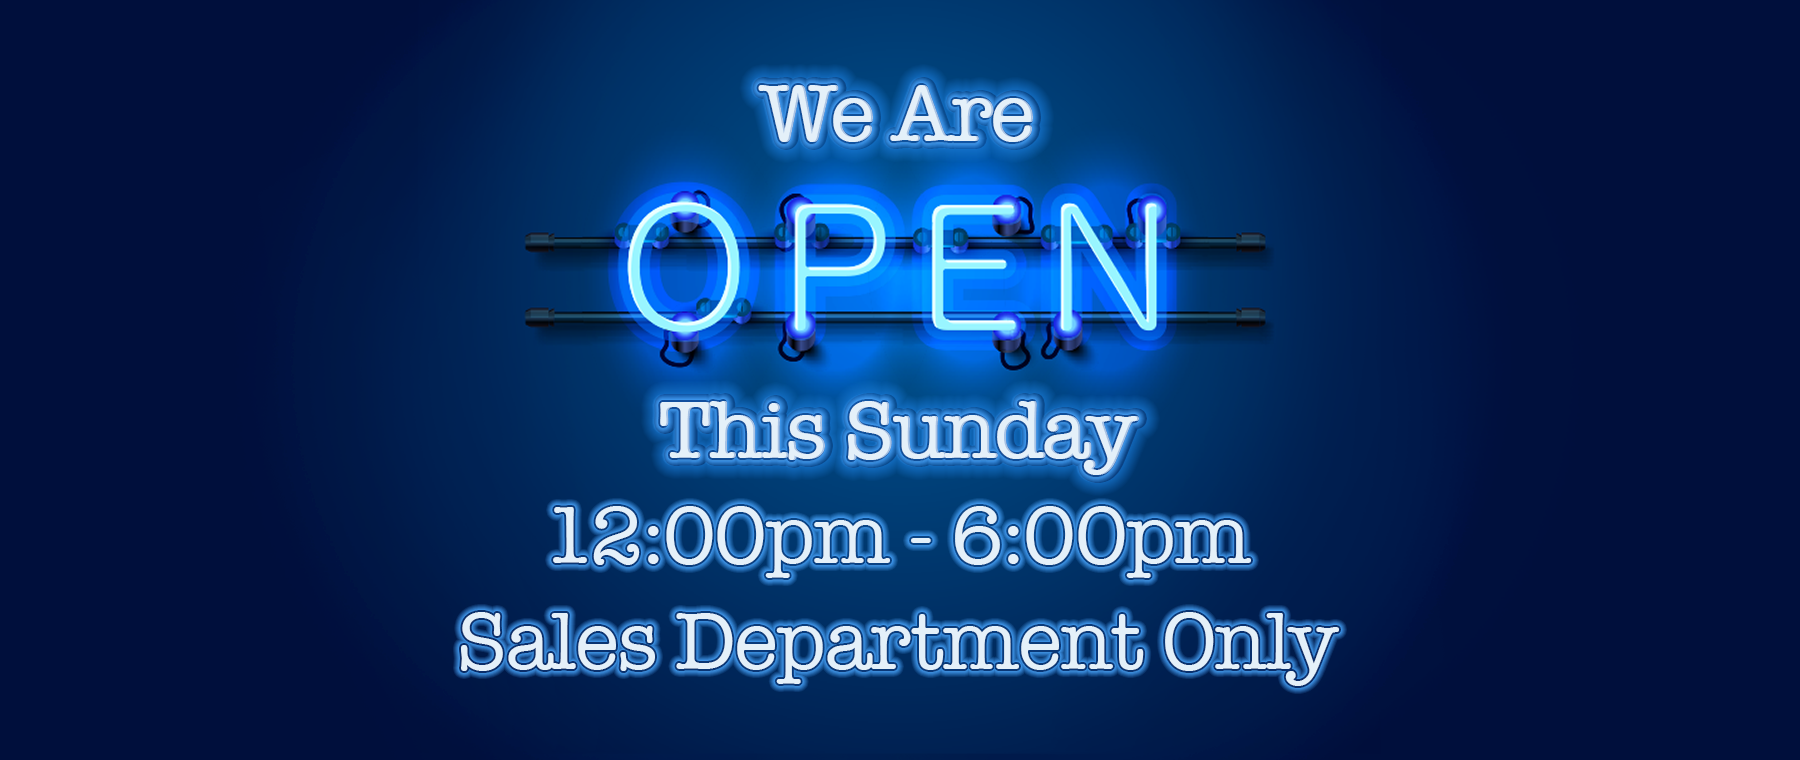 Open Sunday!